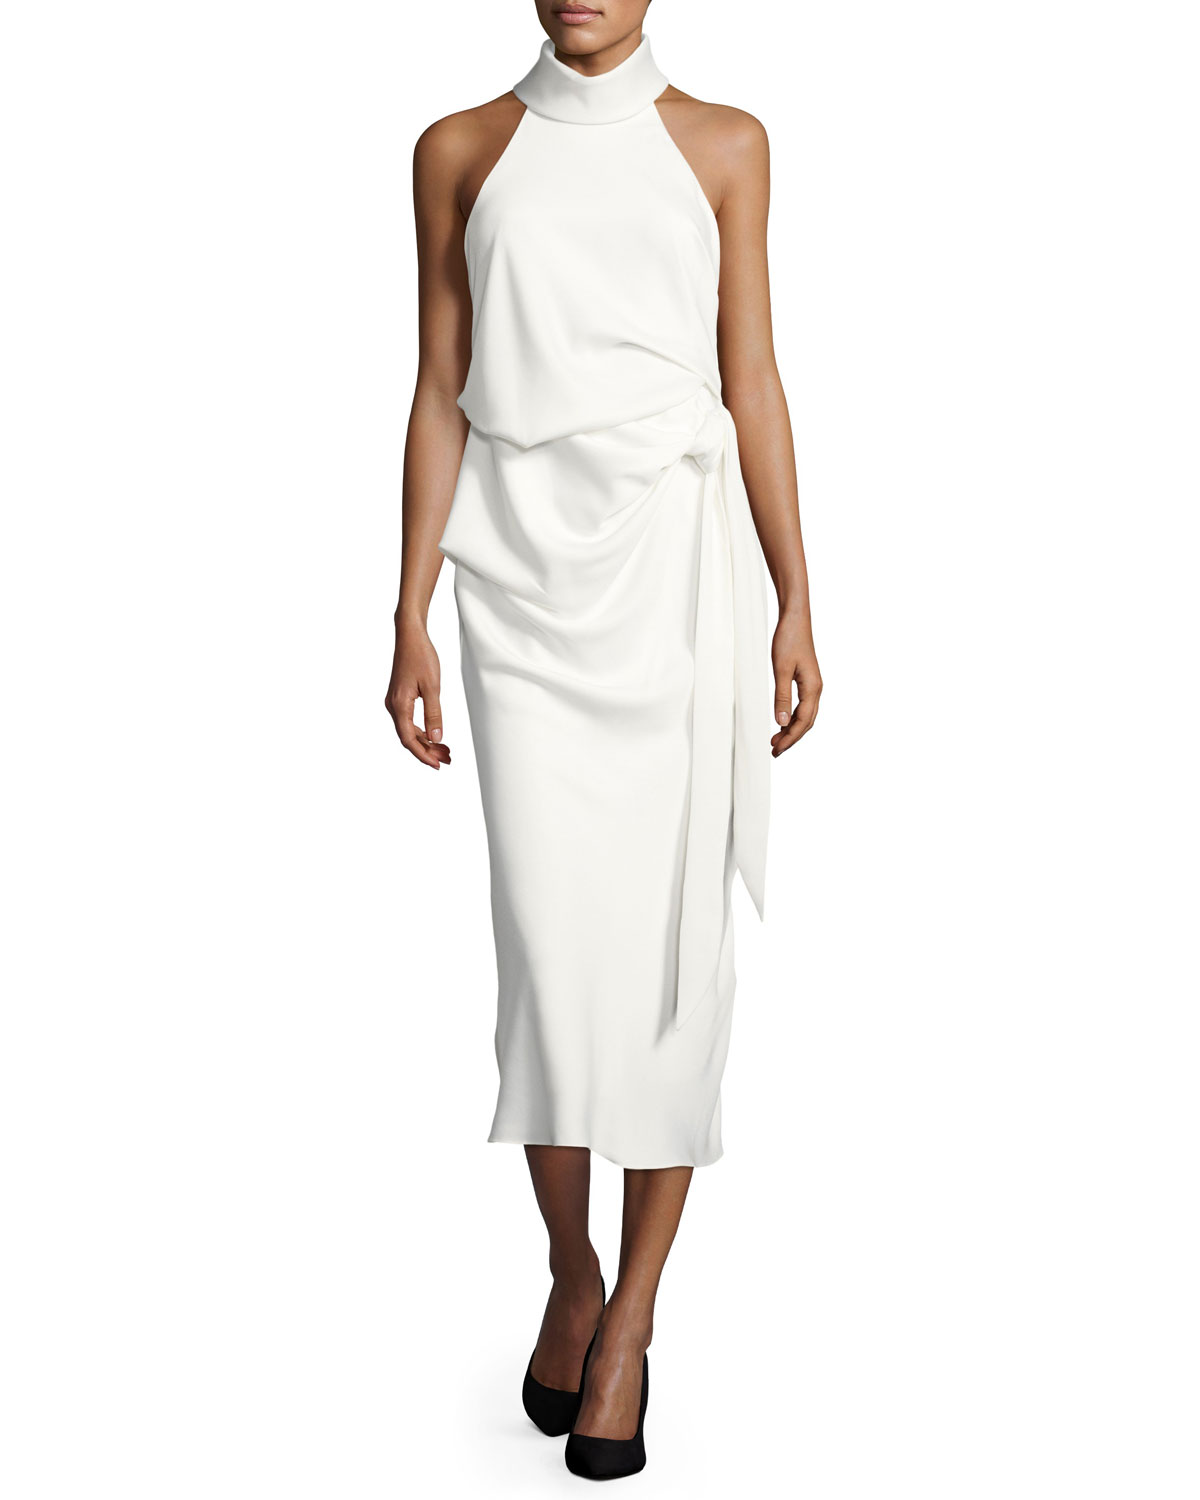 9fd3a3186711 CAMILLA AND MARC Foxglove Sleeveless Draped Cocktail Dress, White ...